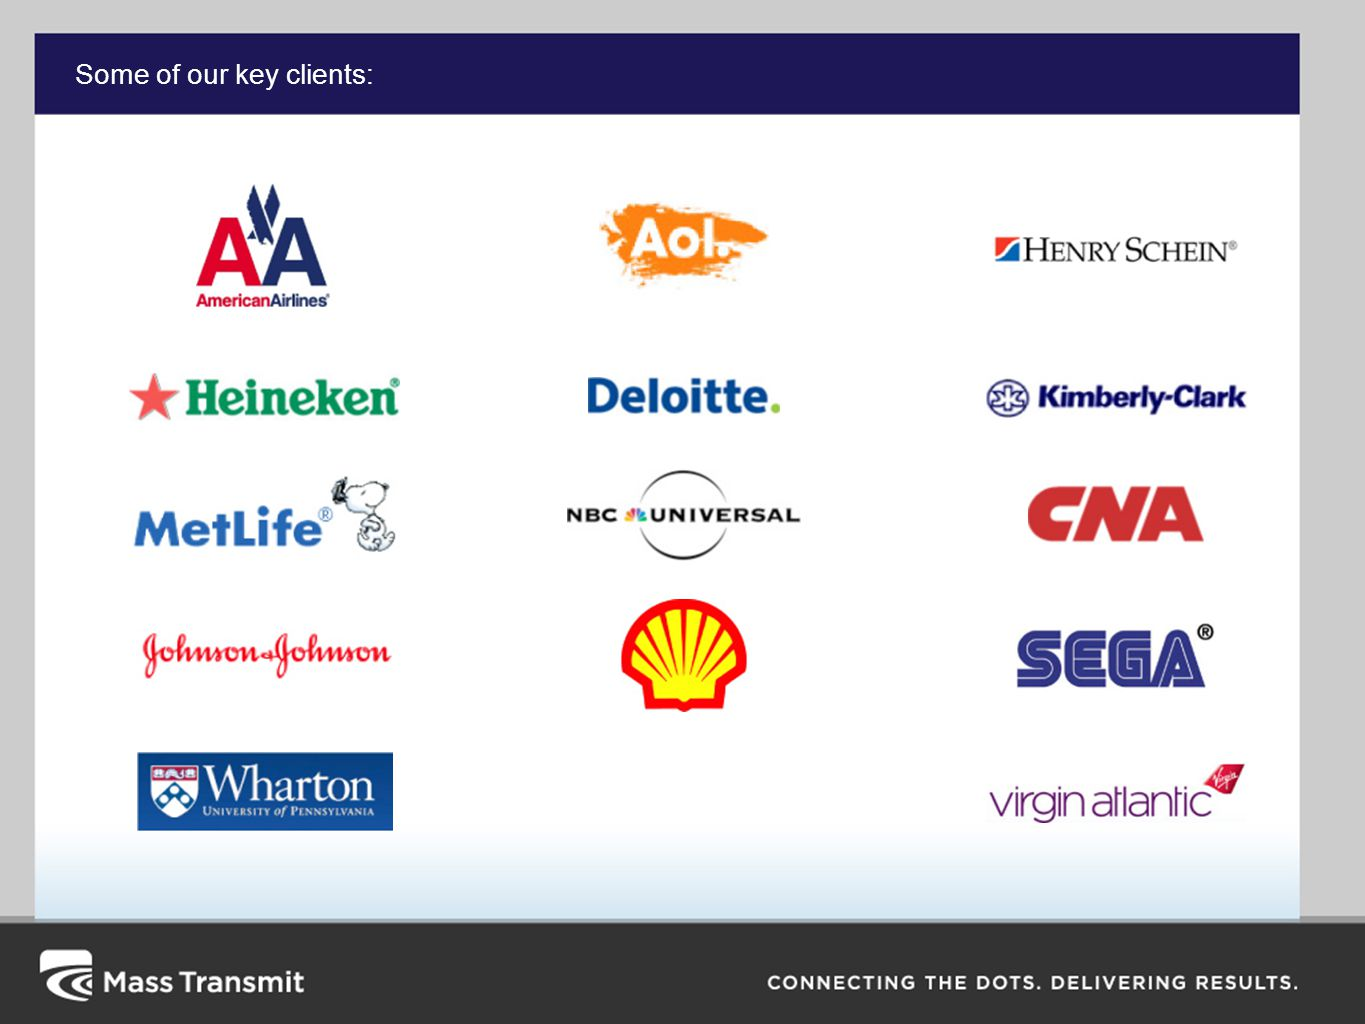 Some of our key clients: